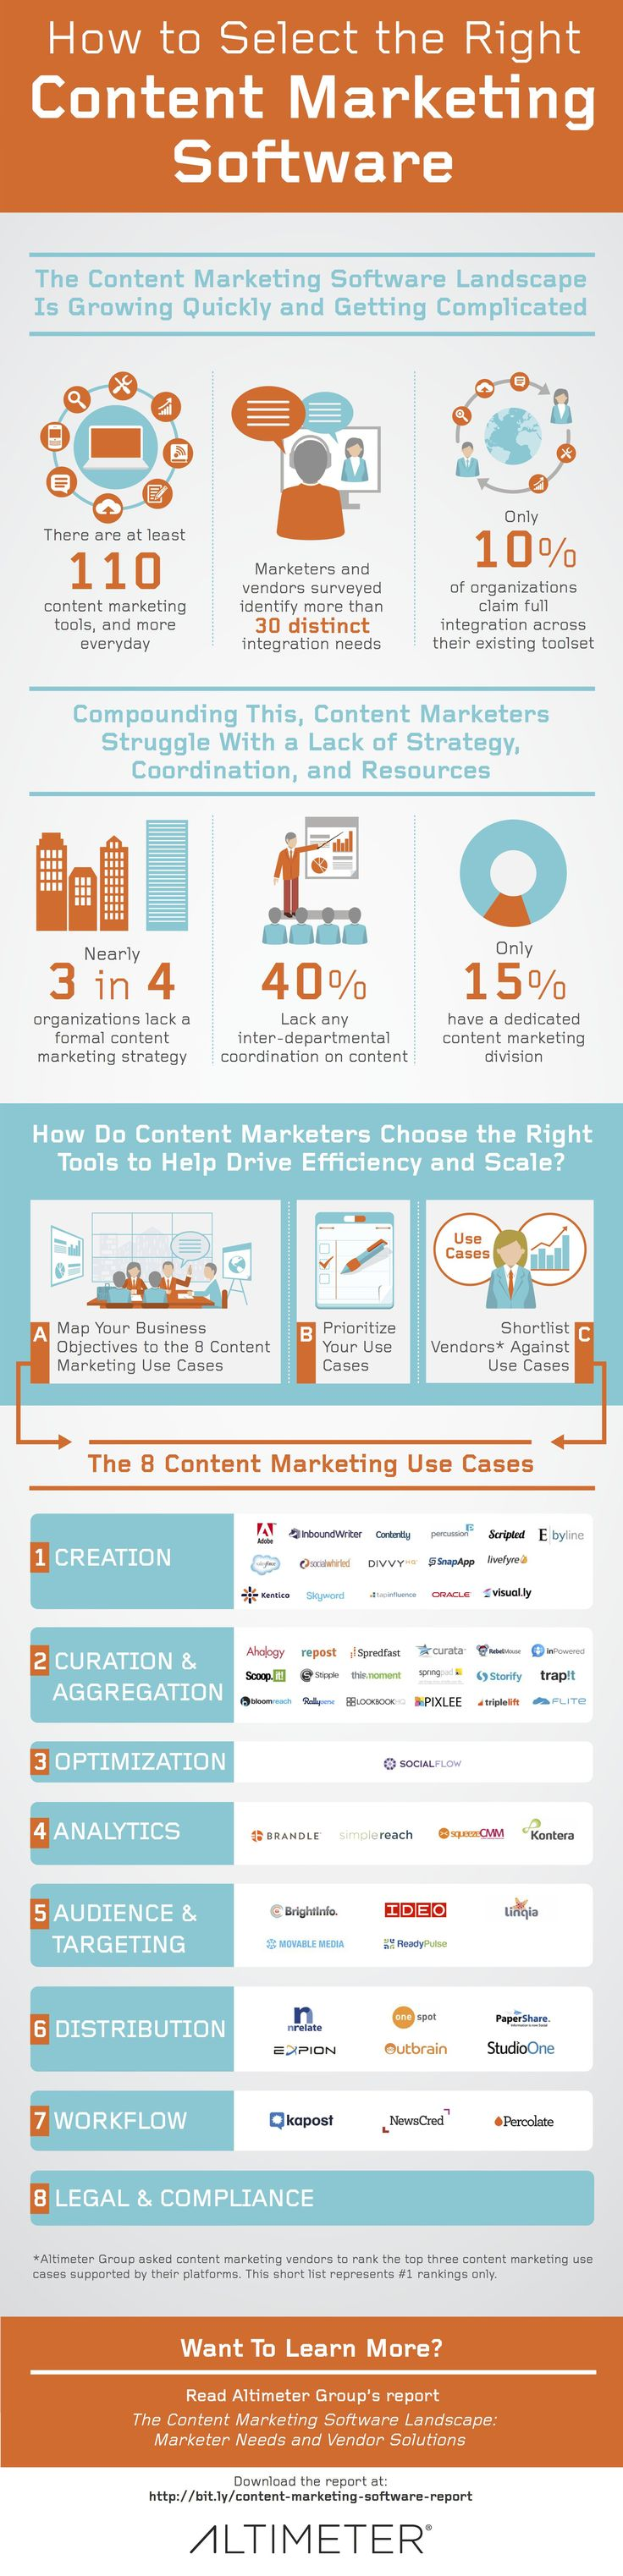 Infographic-How-to-Select-the-Right-Content-Marketing-Software-Altimeter-Group